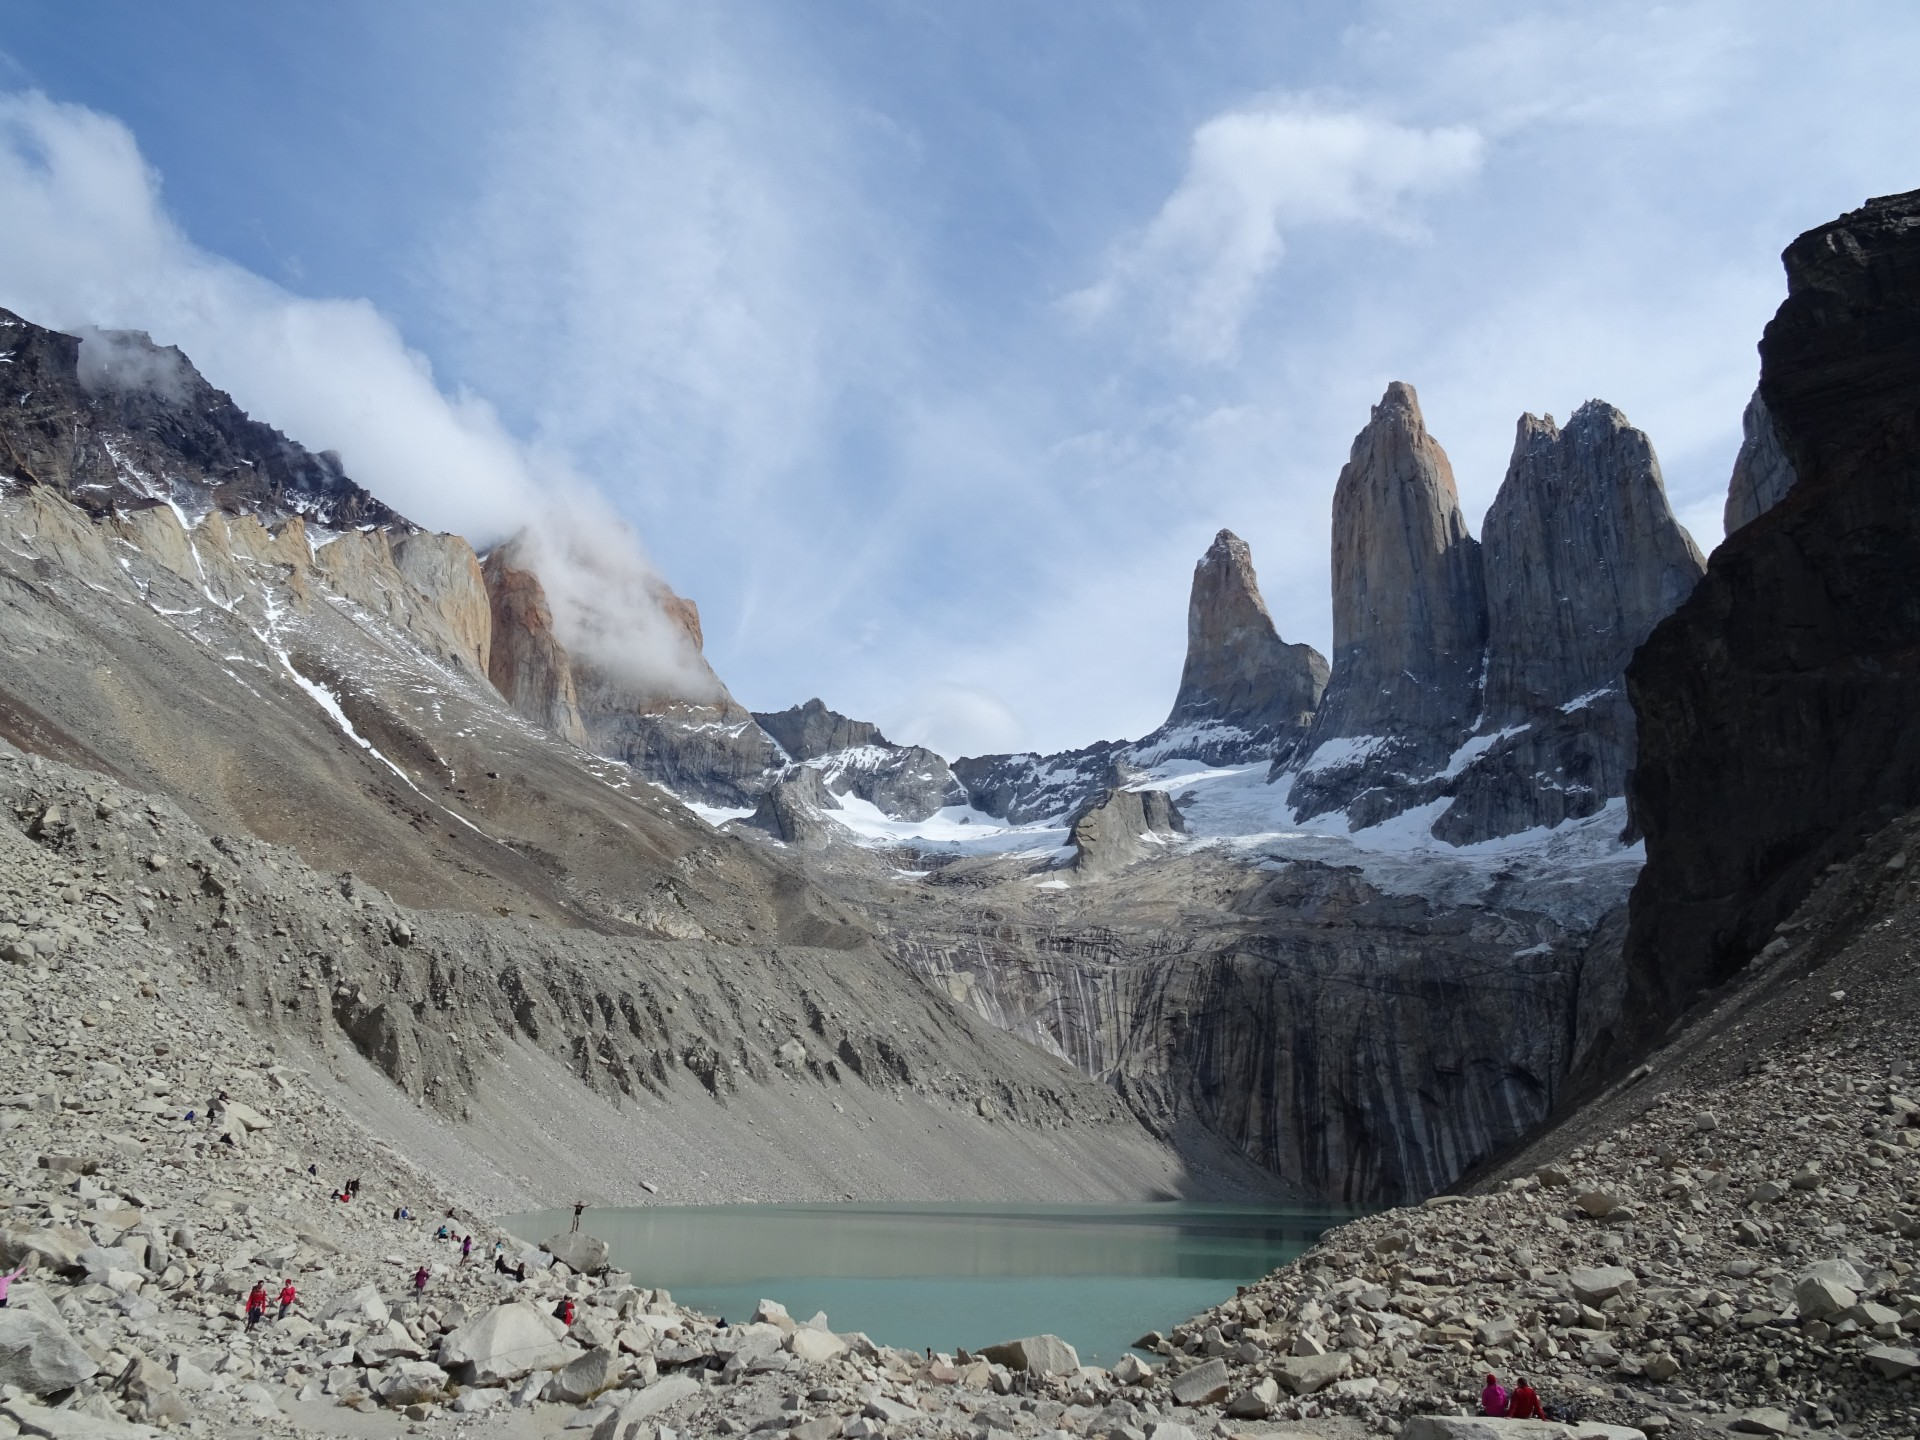 The Torres del Paine, in all their splendour.